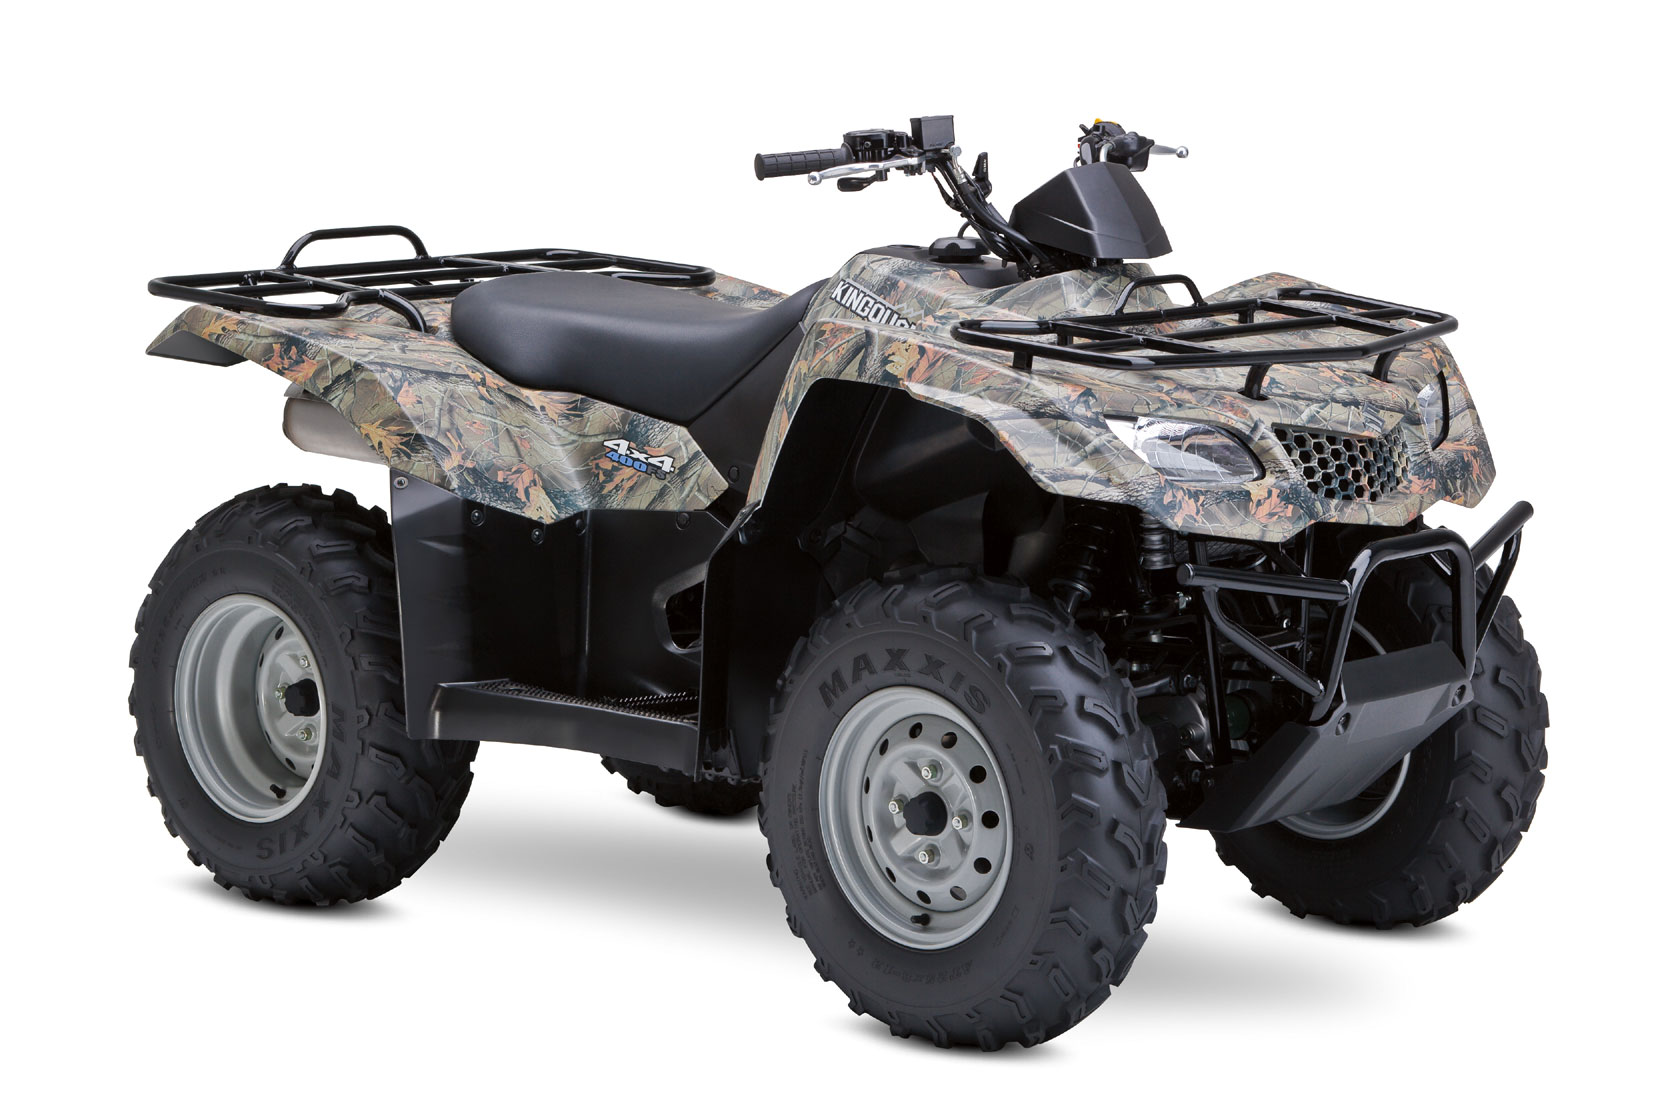 suzuki kingquad 400 fs camo specs 2008 2009 autoevolution. Black Bedroom Furniture Sets. Home Design Ideas